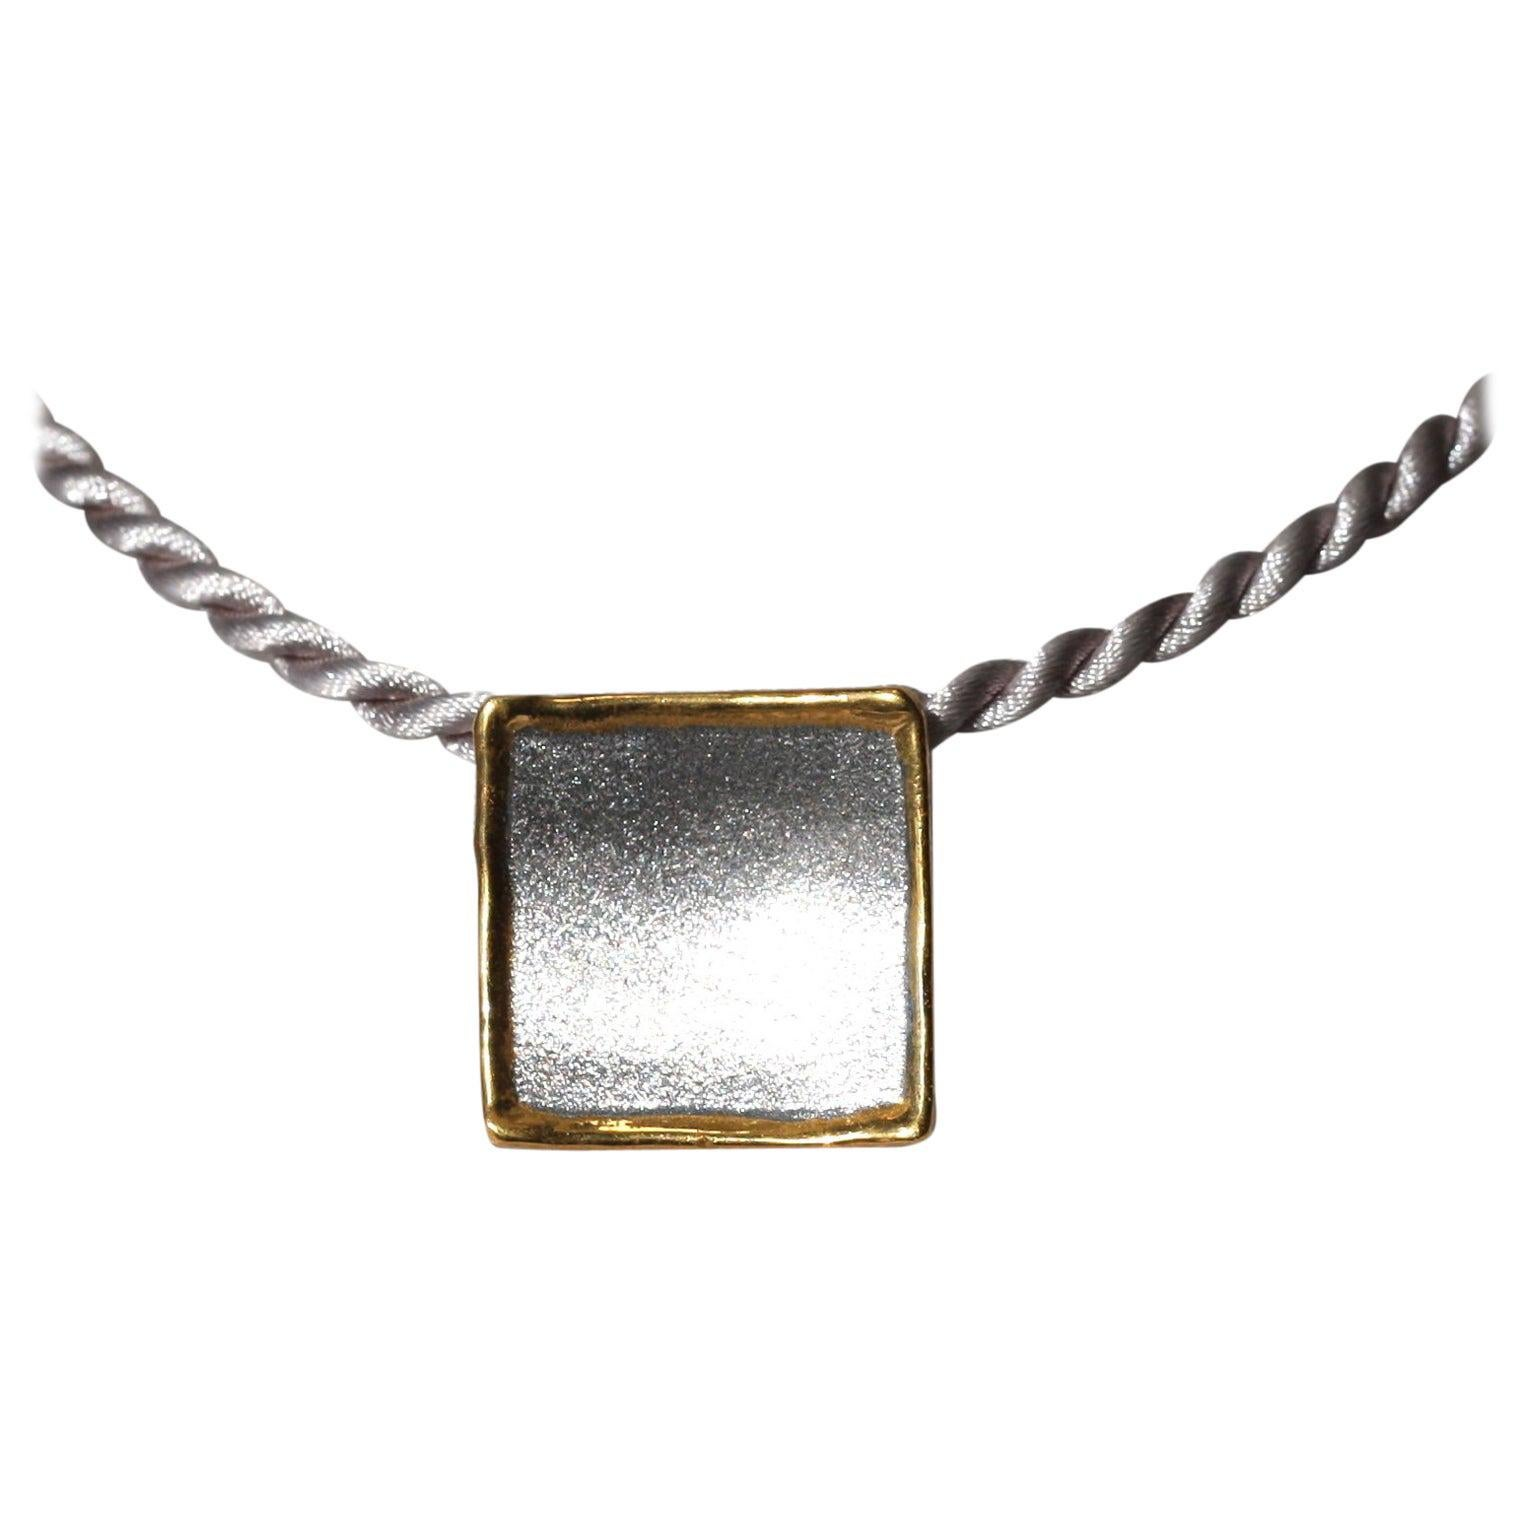 Yianni Creations Fine Silver and 24 Karat Gold Two-Tone Square Pendant Enhancer